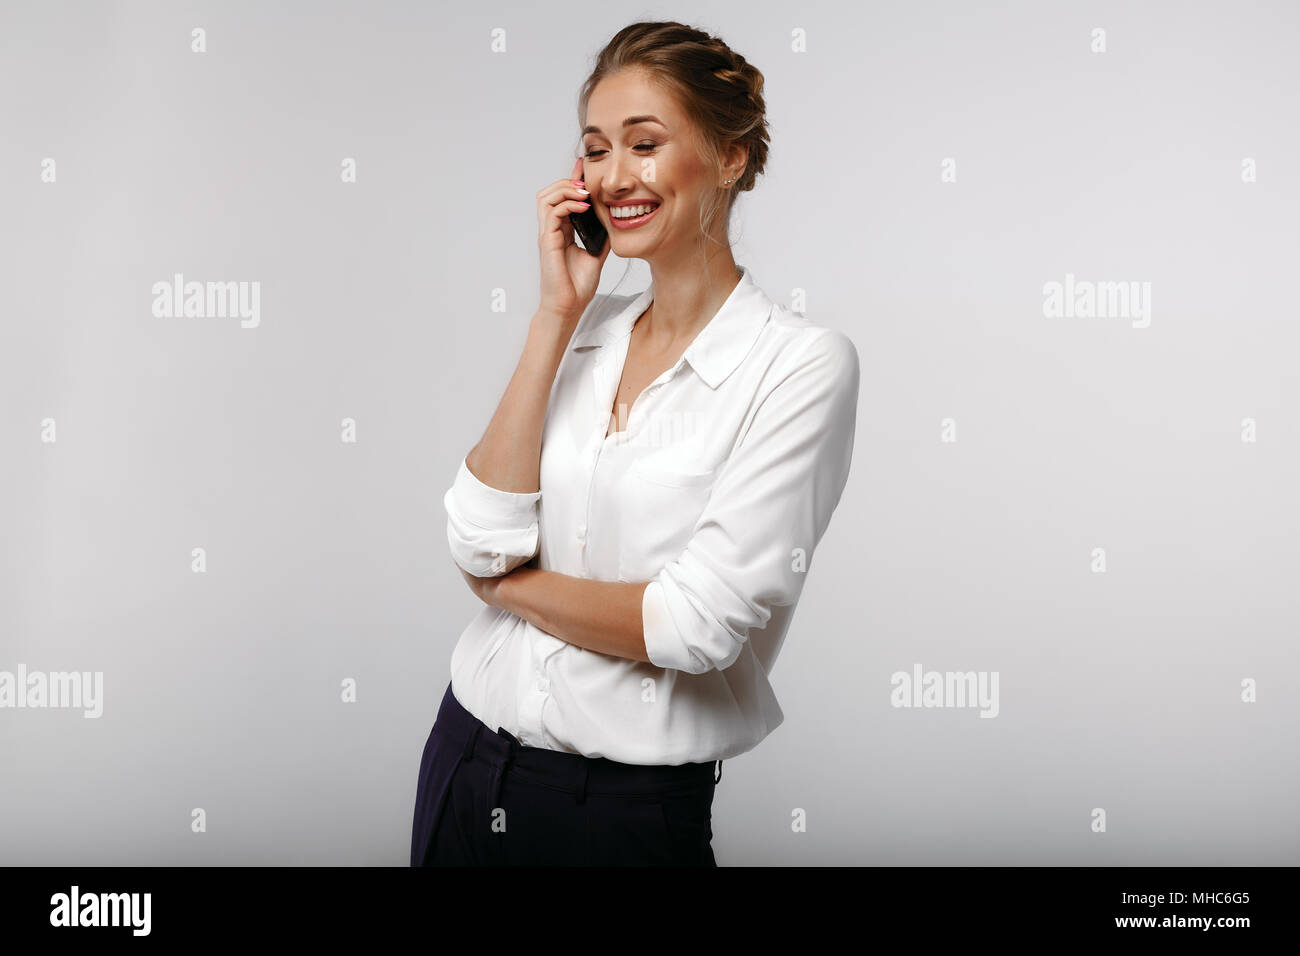 cheerful affable positive businesswoman dressed in white office shirt with a cell phone i business portrait on the gray background - Stock Image